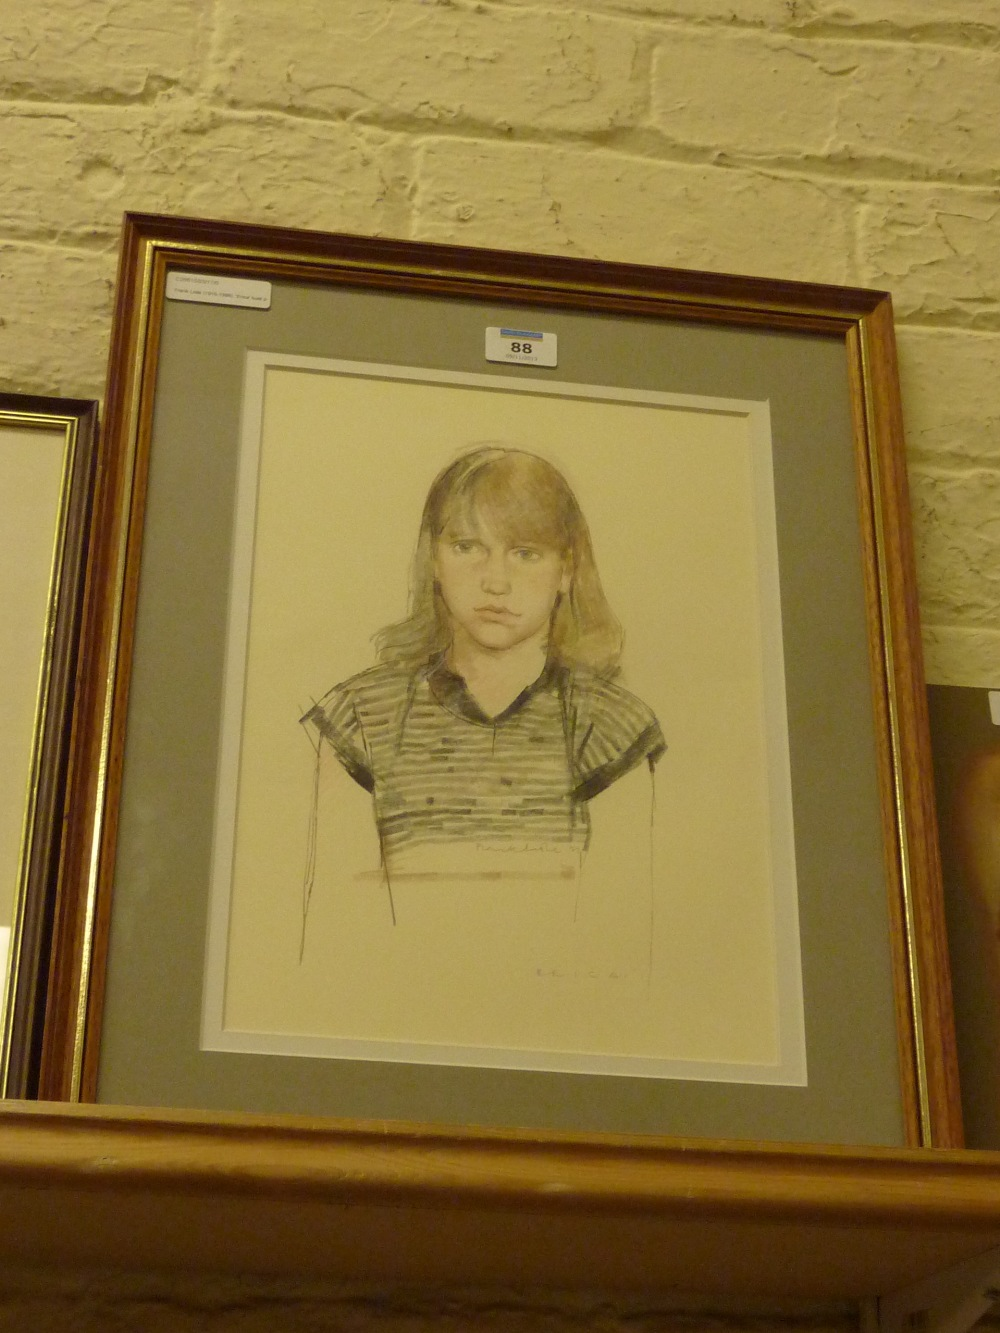 Frank Lisle (1916-1986): 'Erica' - bust portrait, pencil and coloured crayon by Frank Lisle (1916-